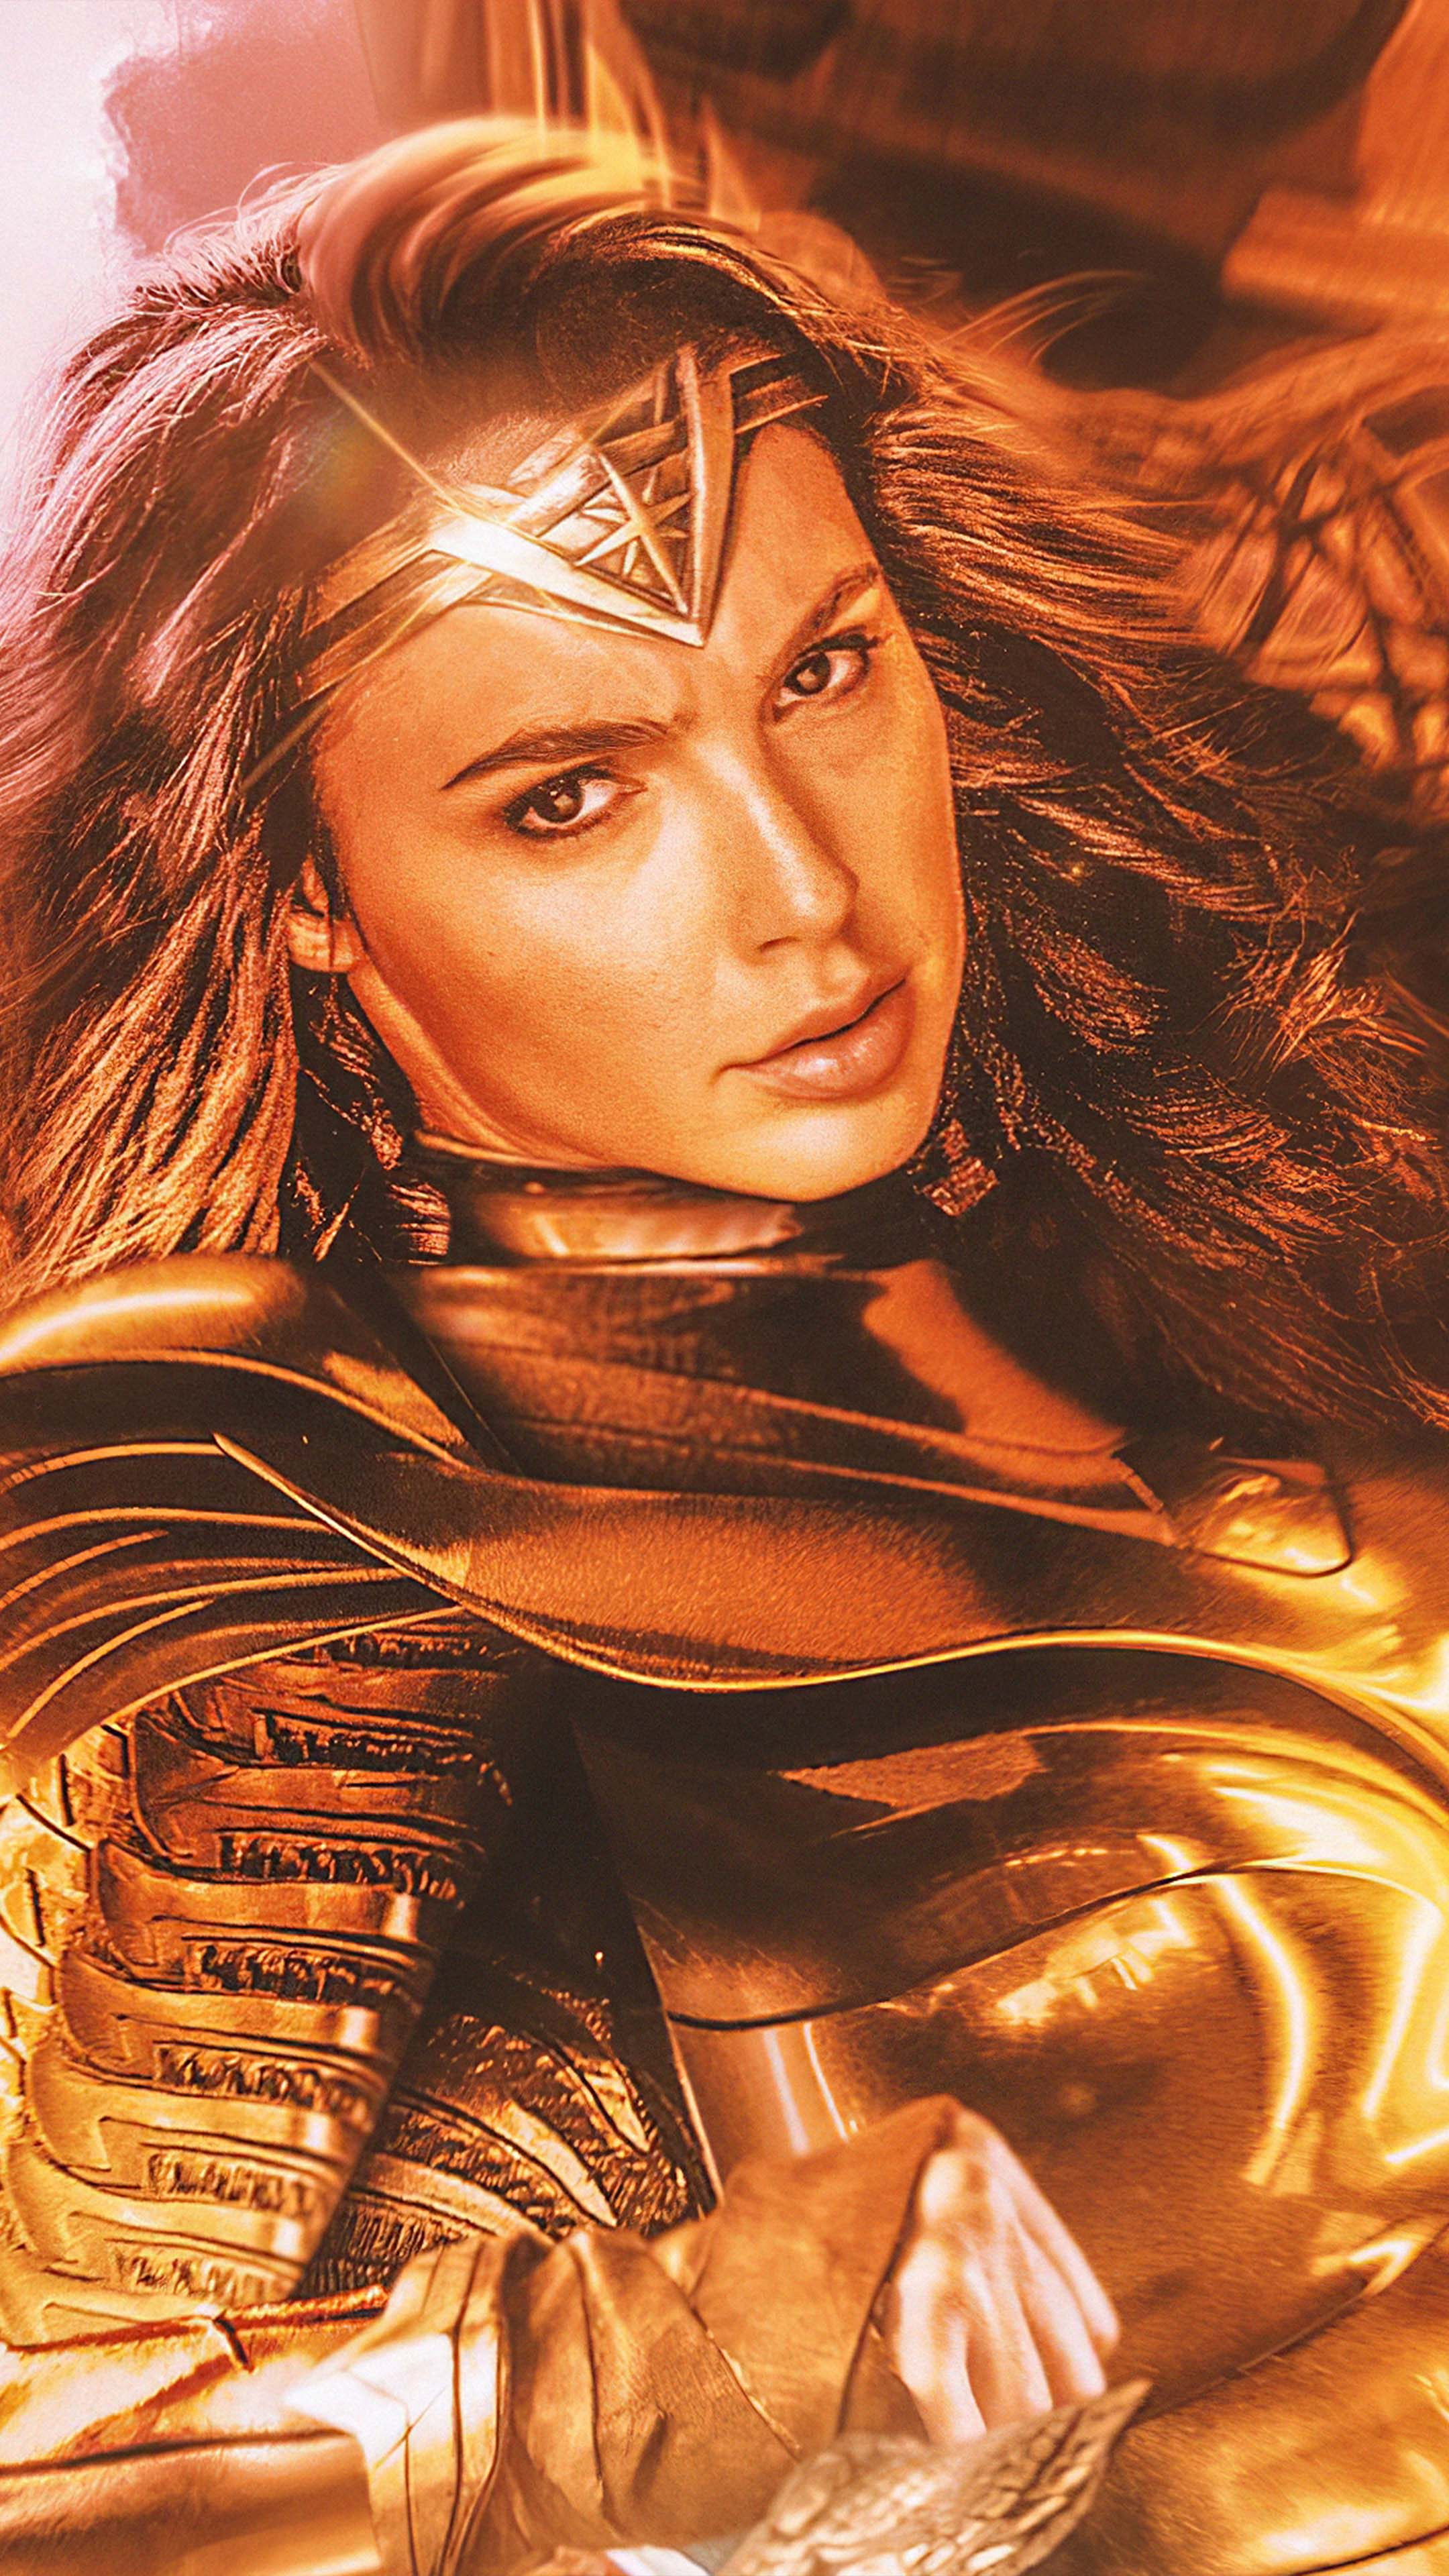 Gal Gadot Wonder Woman 1984 Movie Free 4k Ultra Hd Mobile Wallpaper